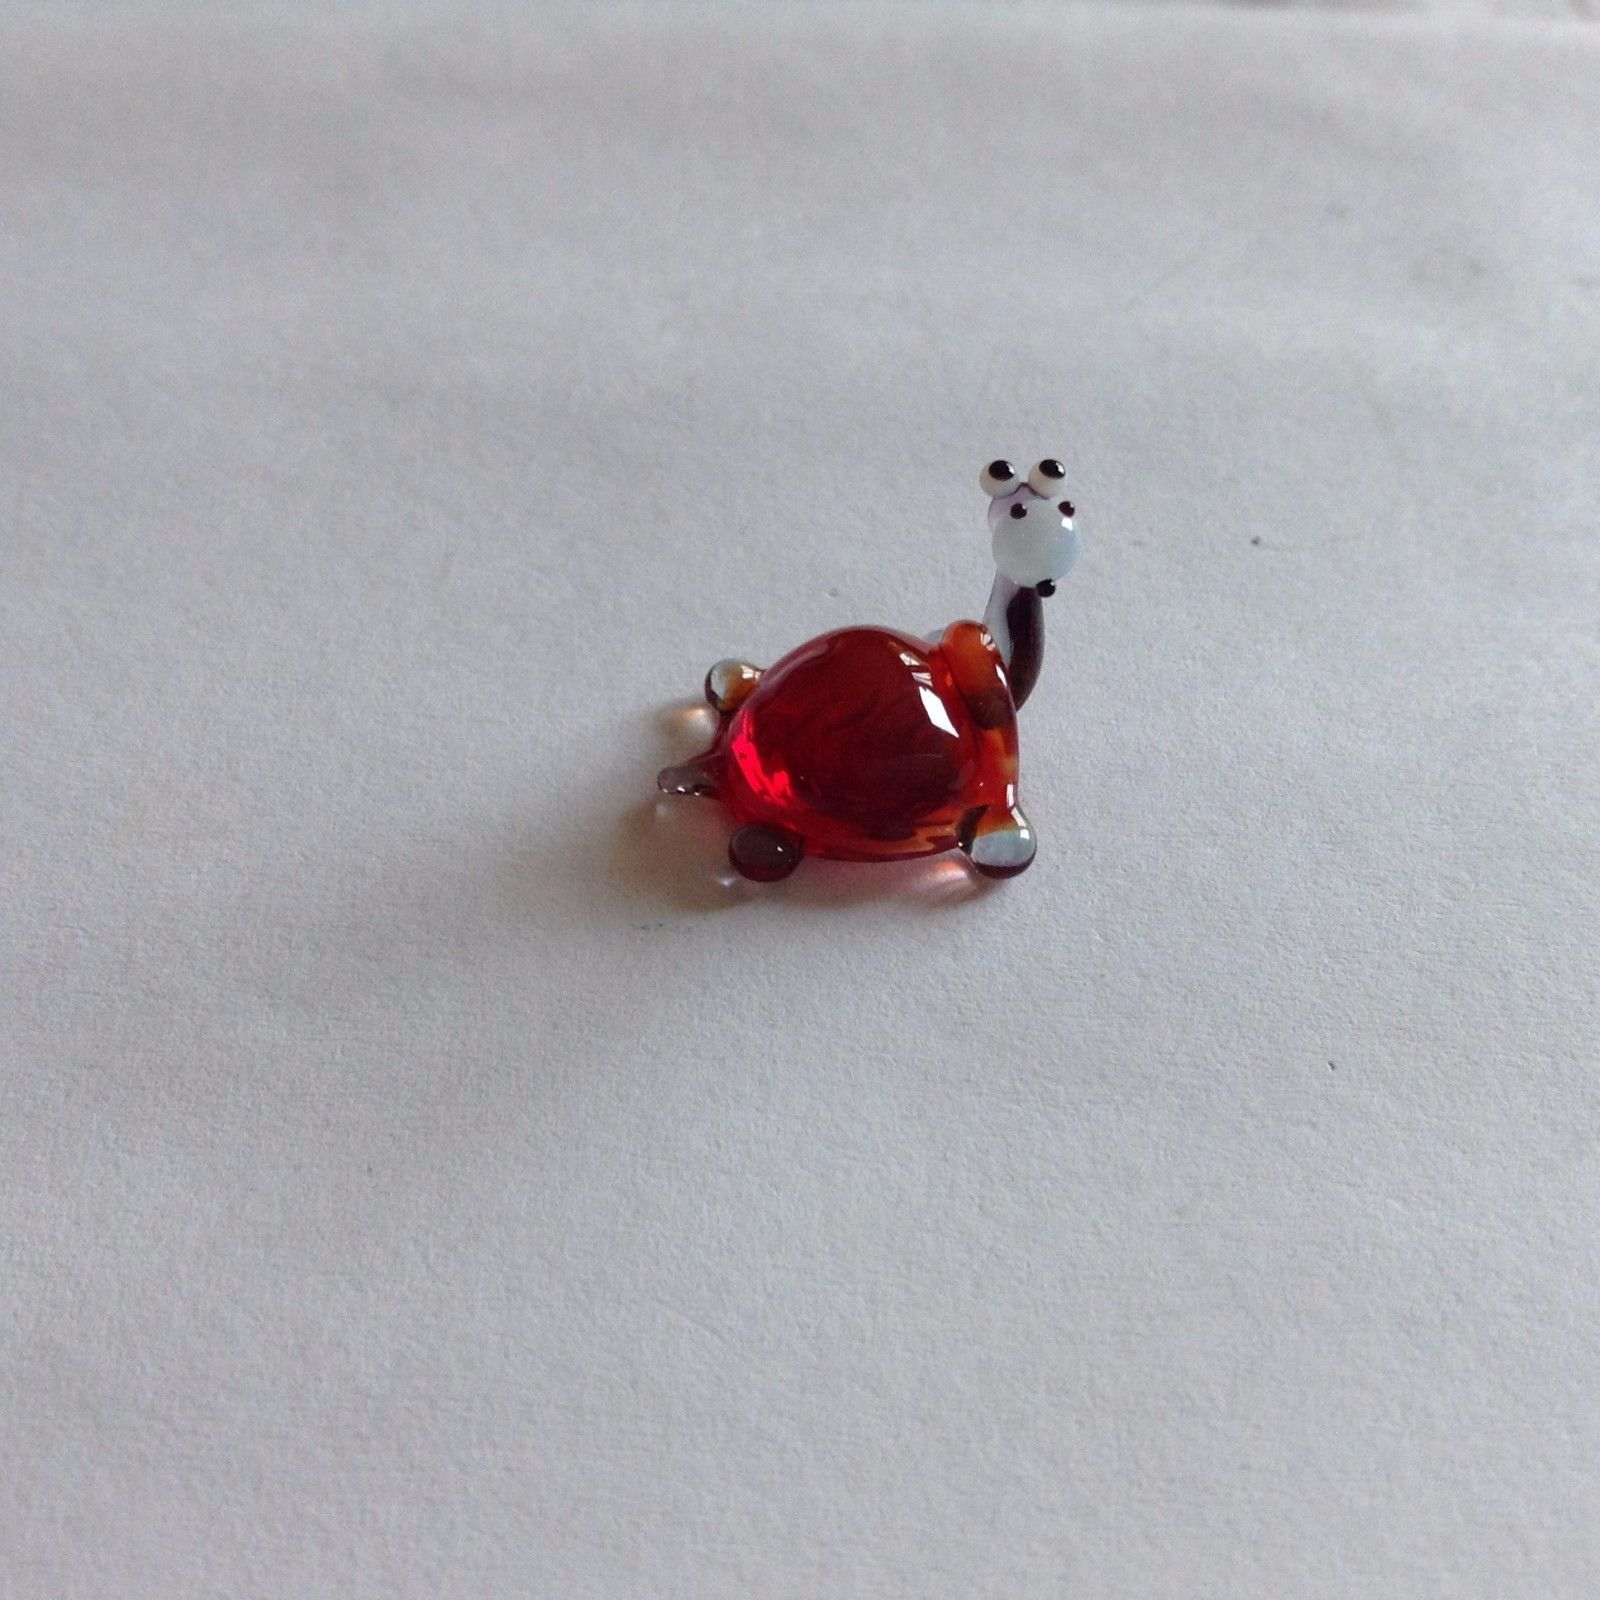 Micro miniature small hand blown glass figurine red backed turtle or hippo ? USA